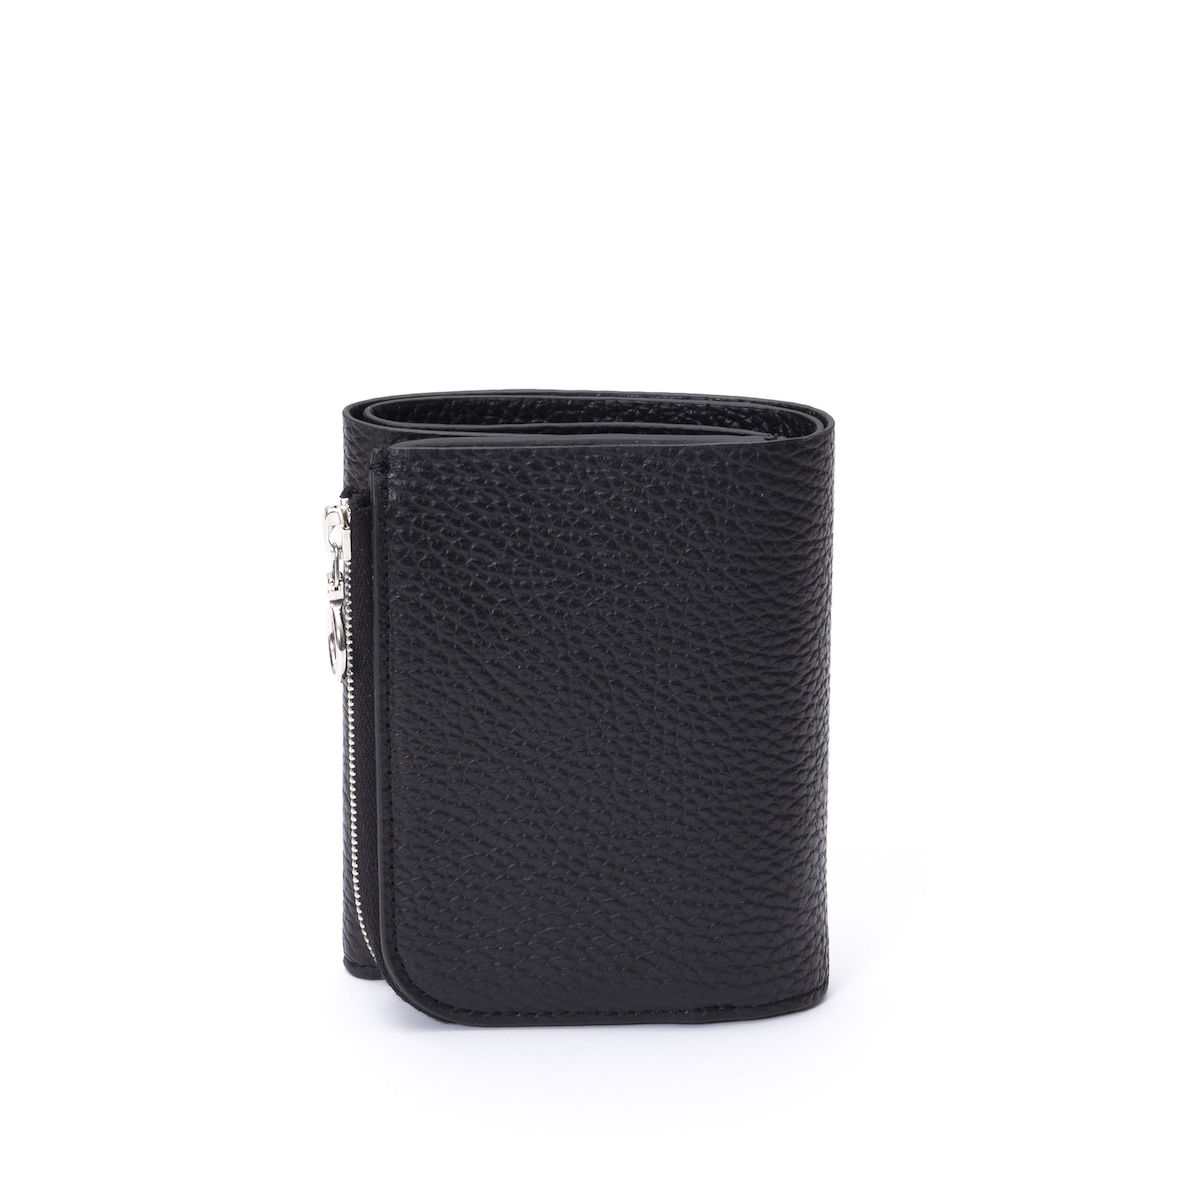 Aeta / PG LEATHER WALLET typeA (Black)